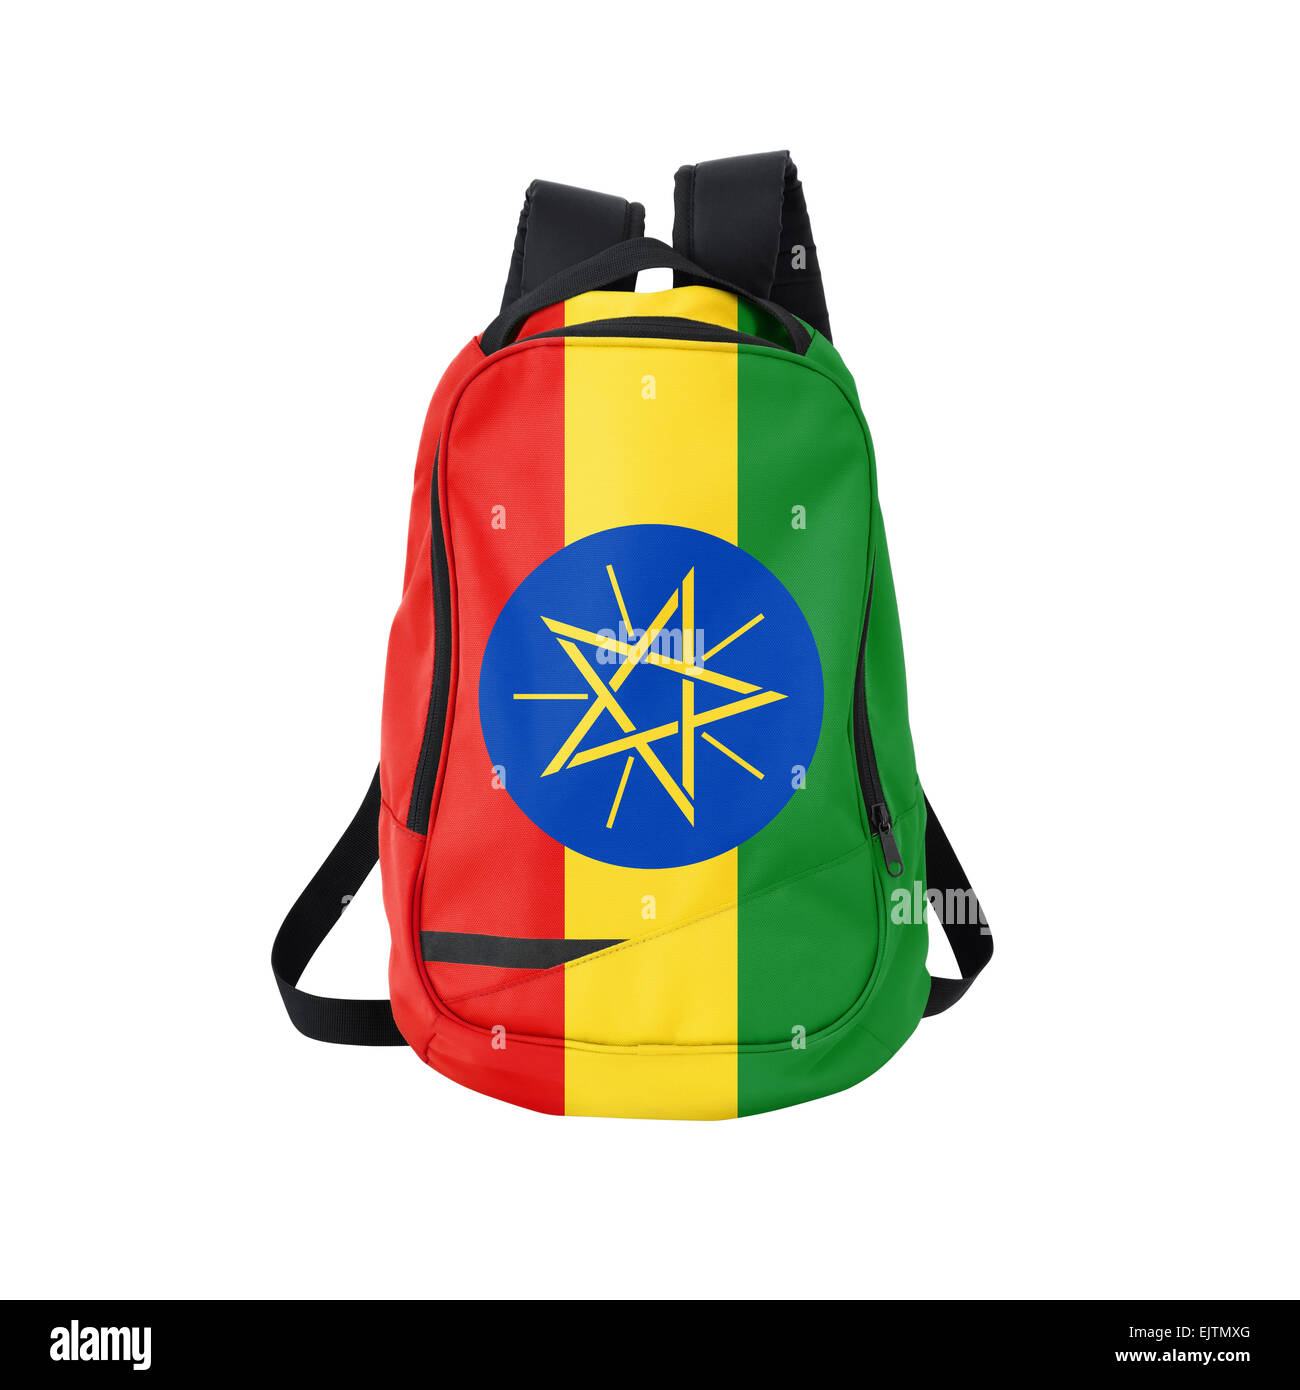 Ethiopian flag backpack isolated on white background. Back to school concept. Education and study abroad. Travel - Stock Image